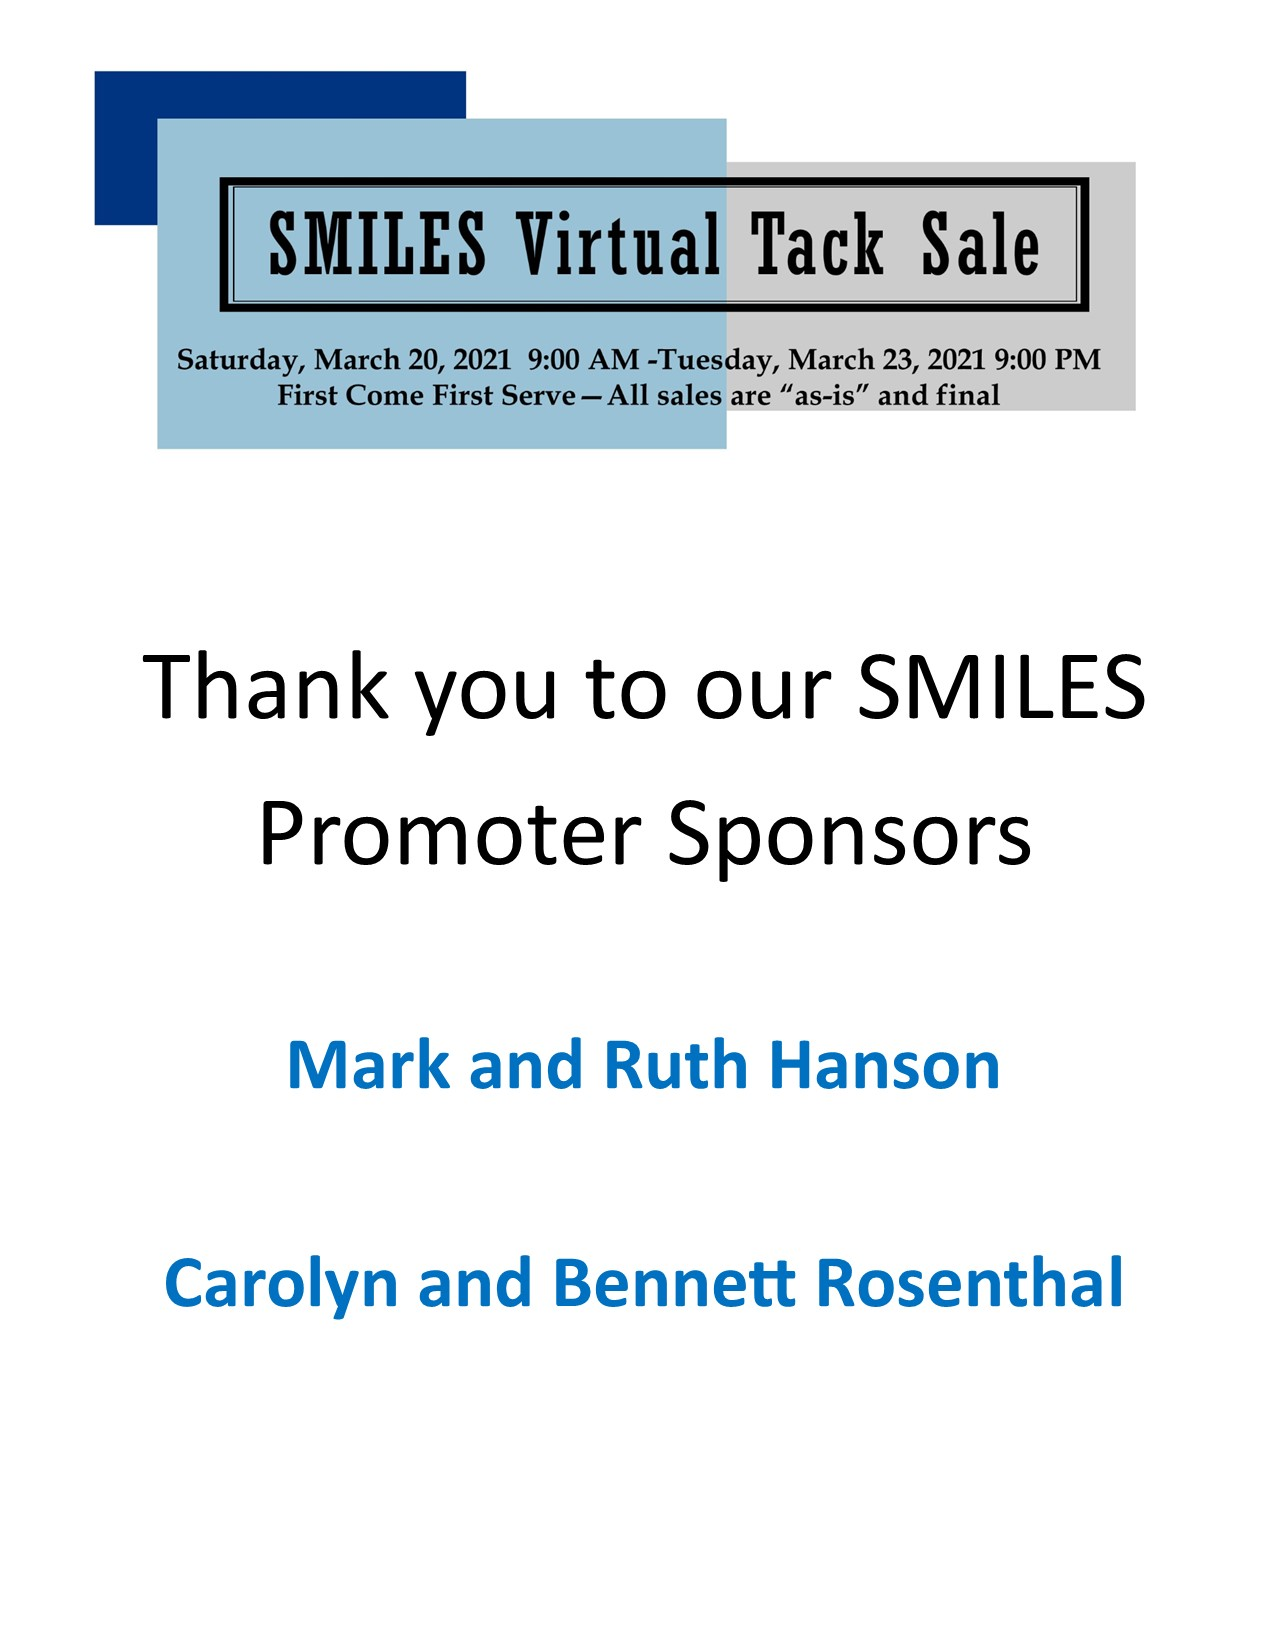 SMILES Promoters sponsors